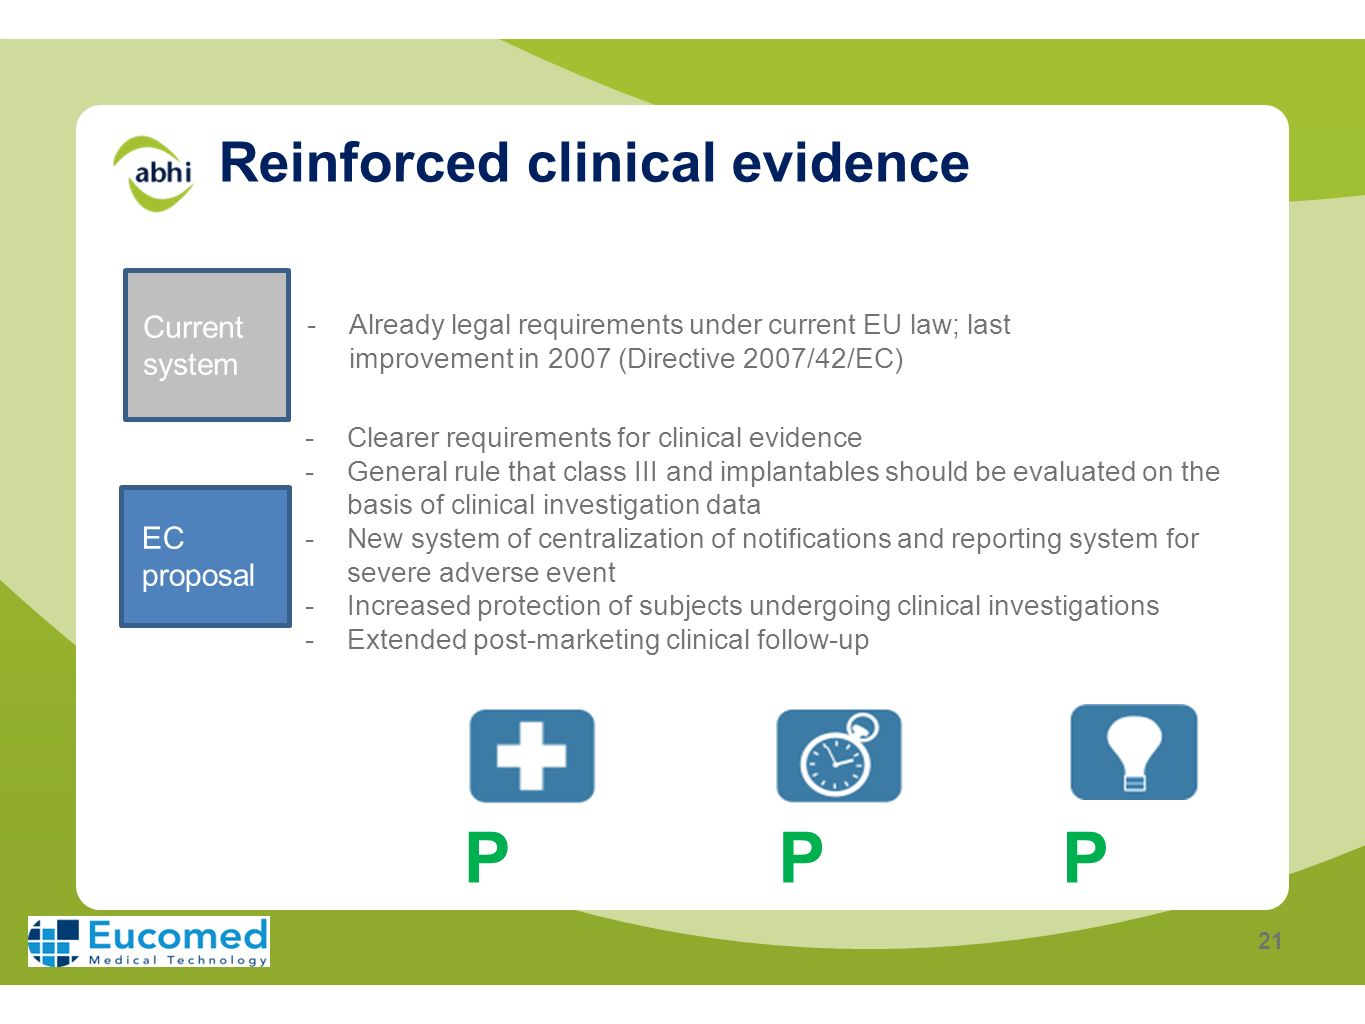 Reinforced clinical evidence